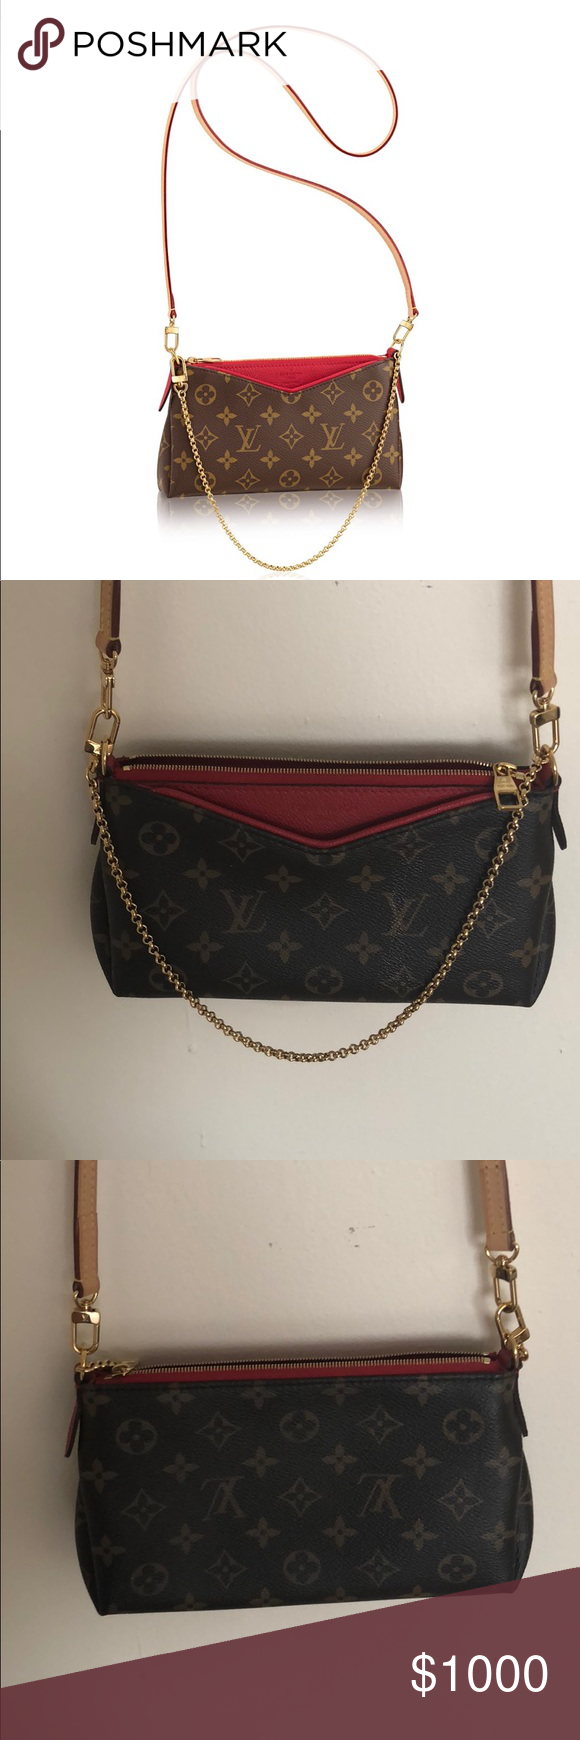 2f14a920d Louis Vuitton- PALLAS CLUTCH Beautiful, AUTHENTIC and currently Out of  Stock Monogram canvas cross